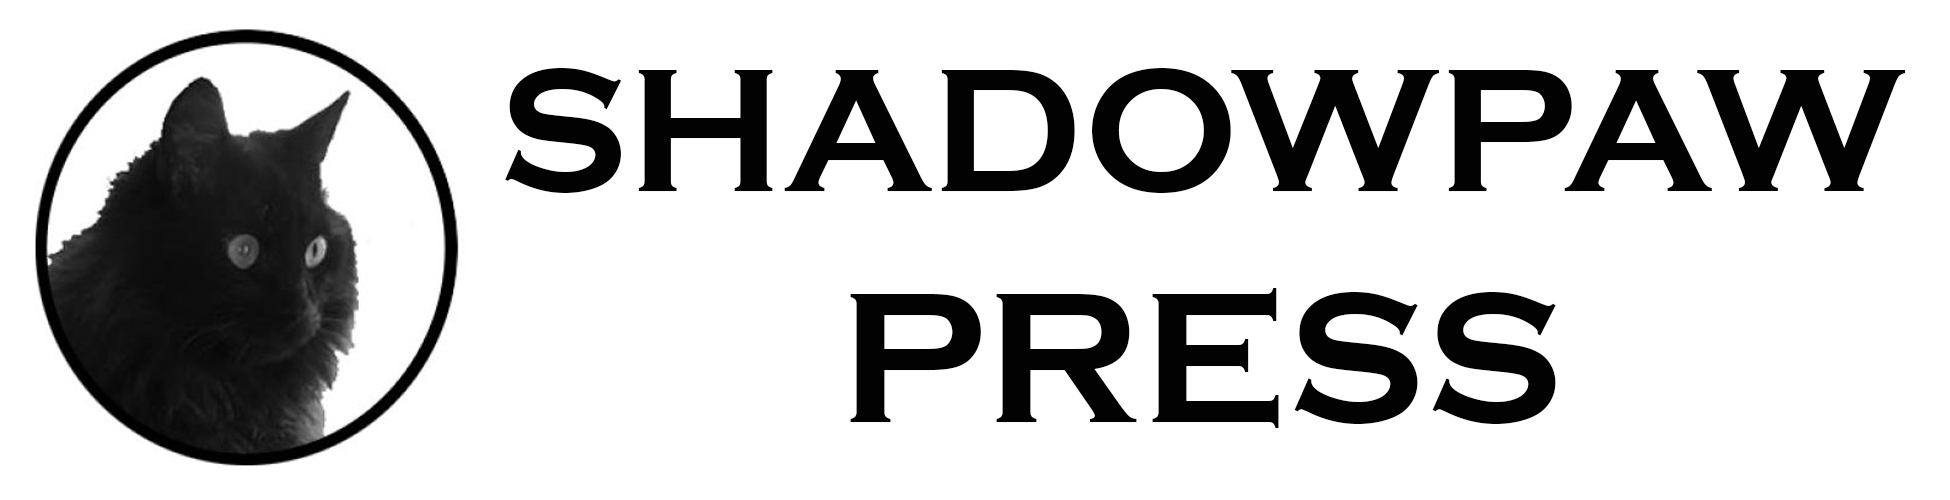 Shadowpaw Press